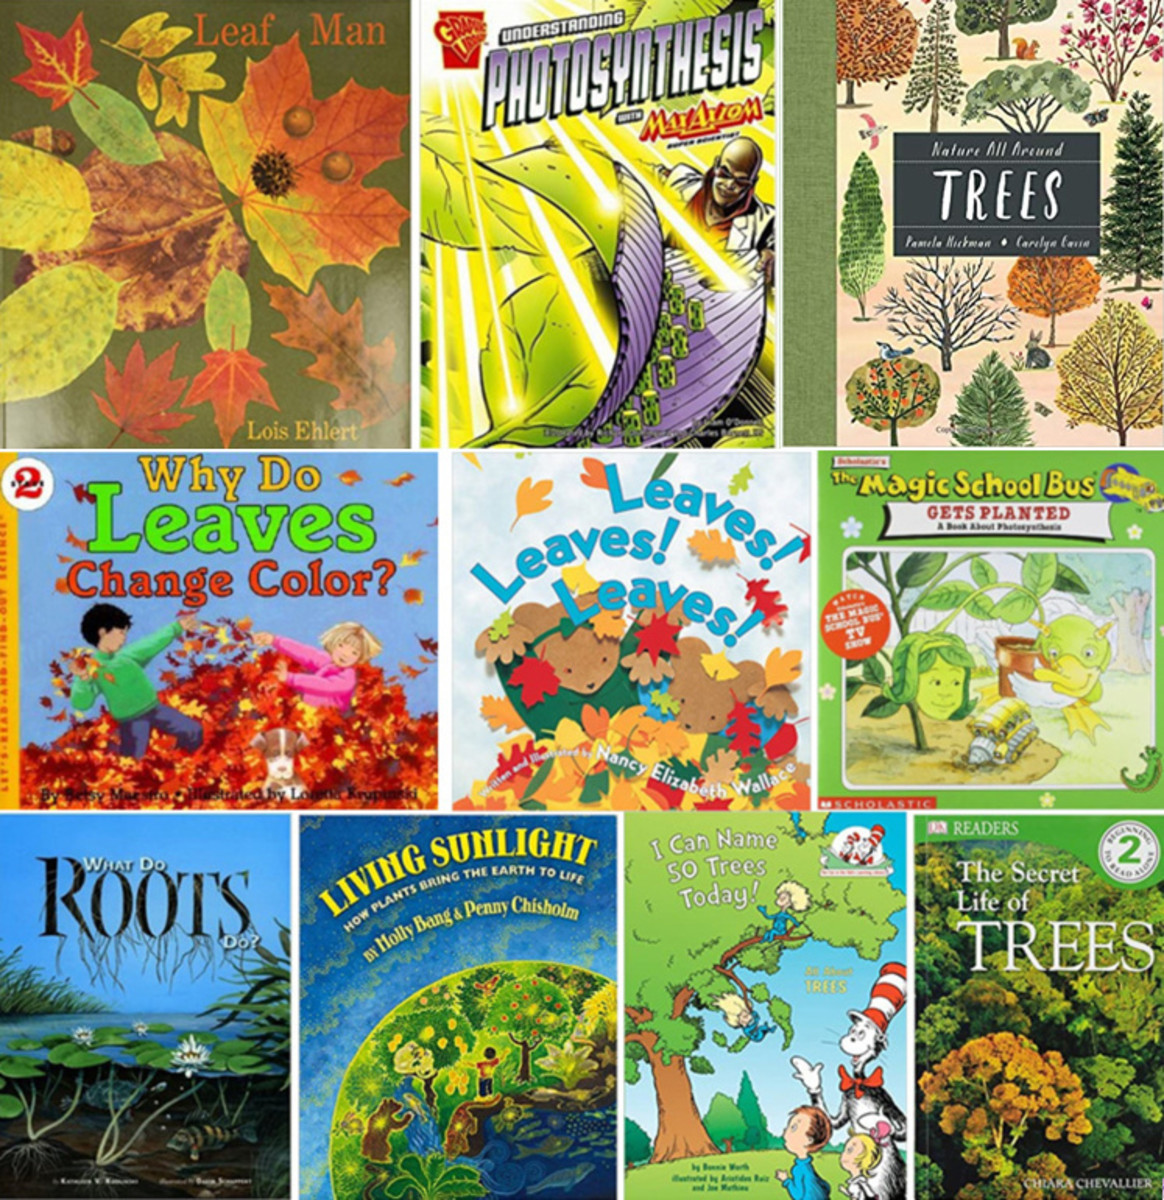 Favorite Children's Books on Roots, Stems, Leaves, and Trees